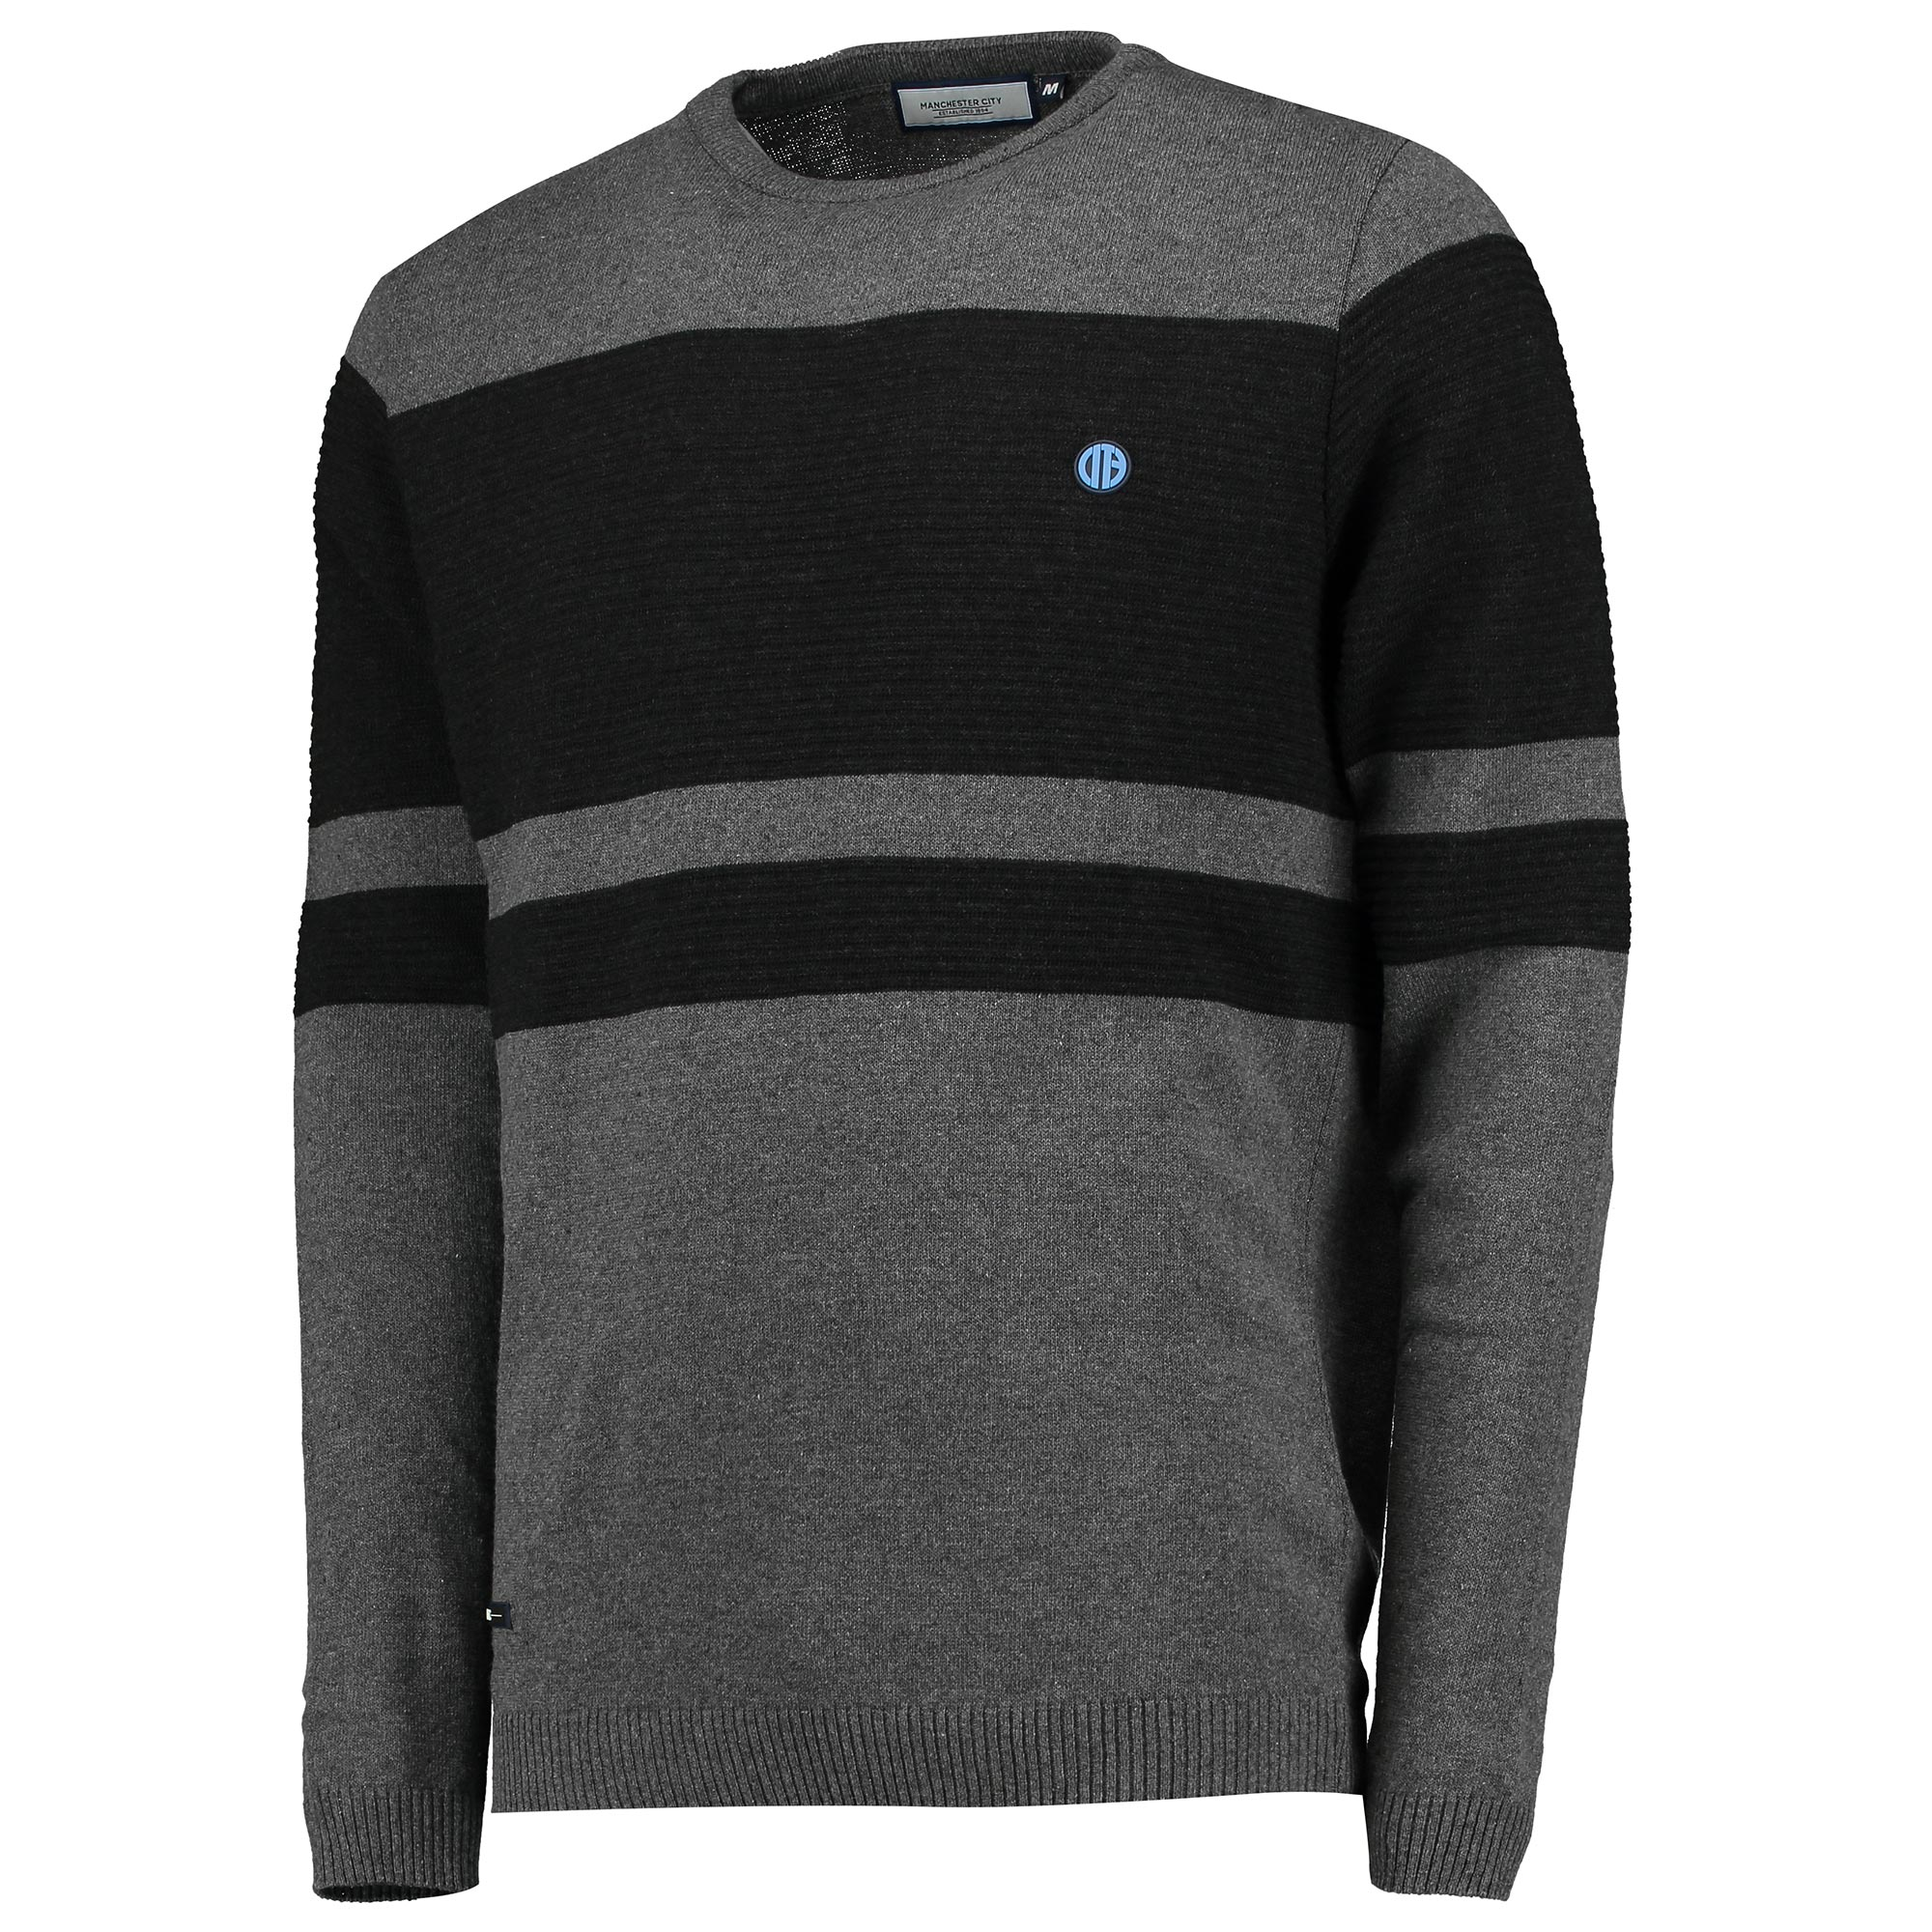 Manchester City Terrace Knit Jumper - Charcoal